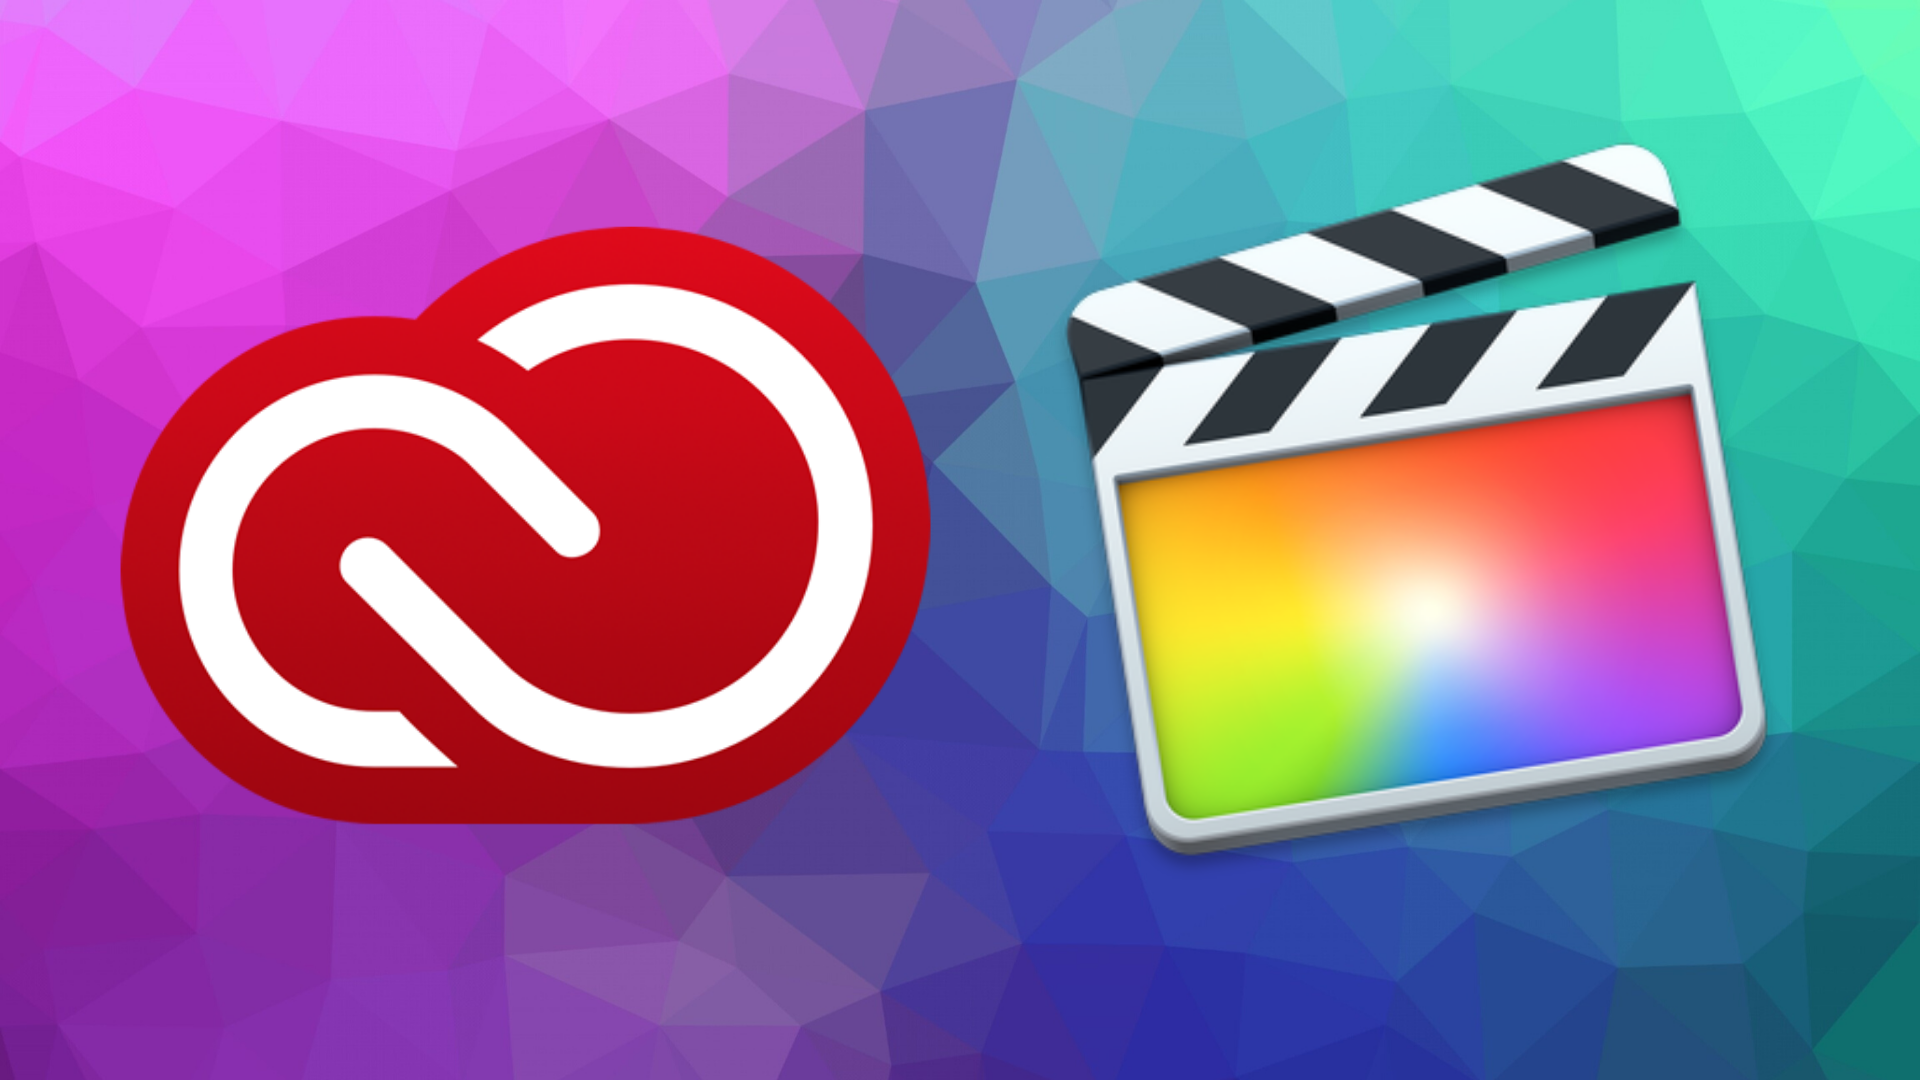 Apple and Adobe Offer Free Editing Tools – Here's How They Work